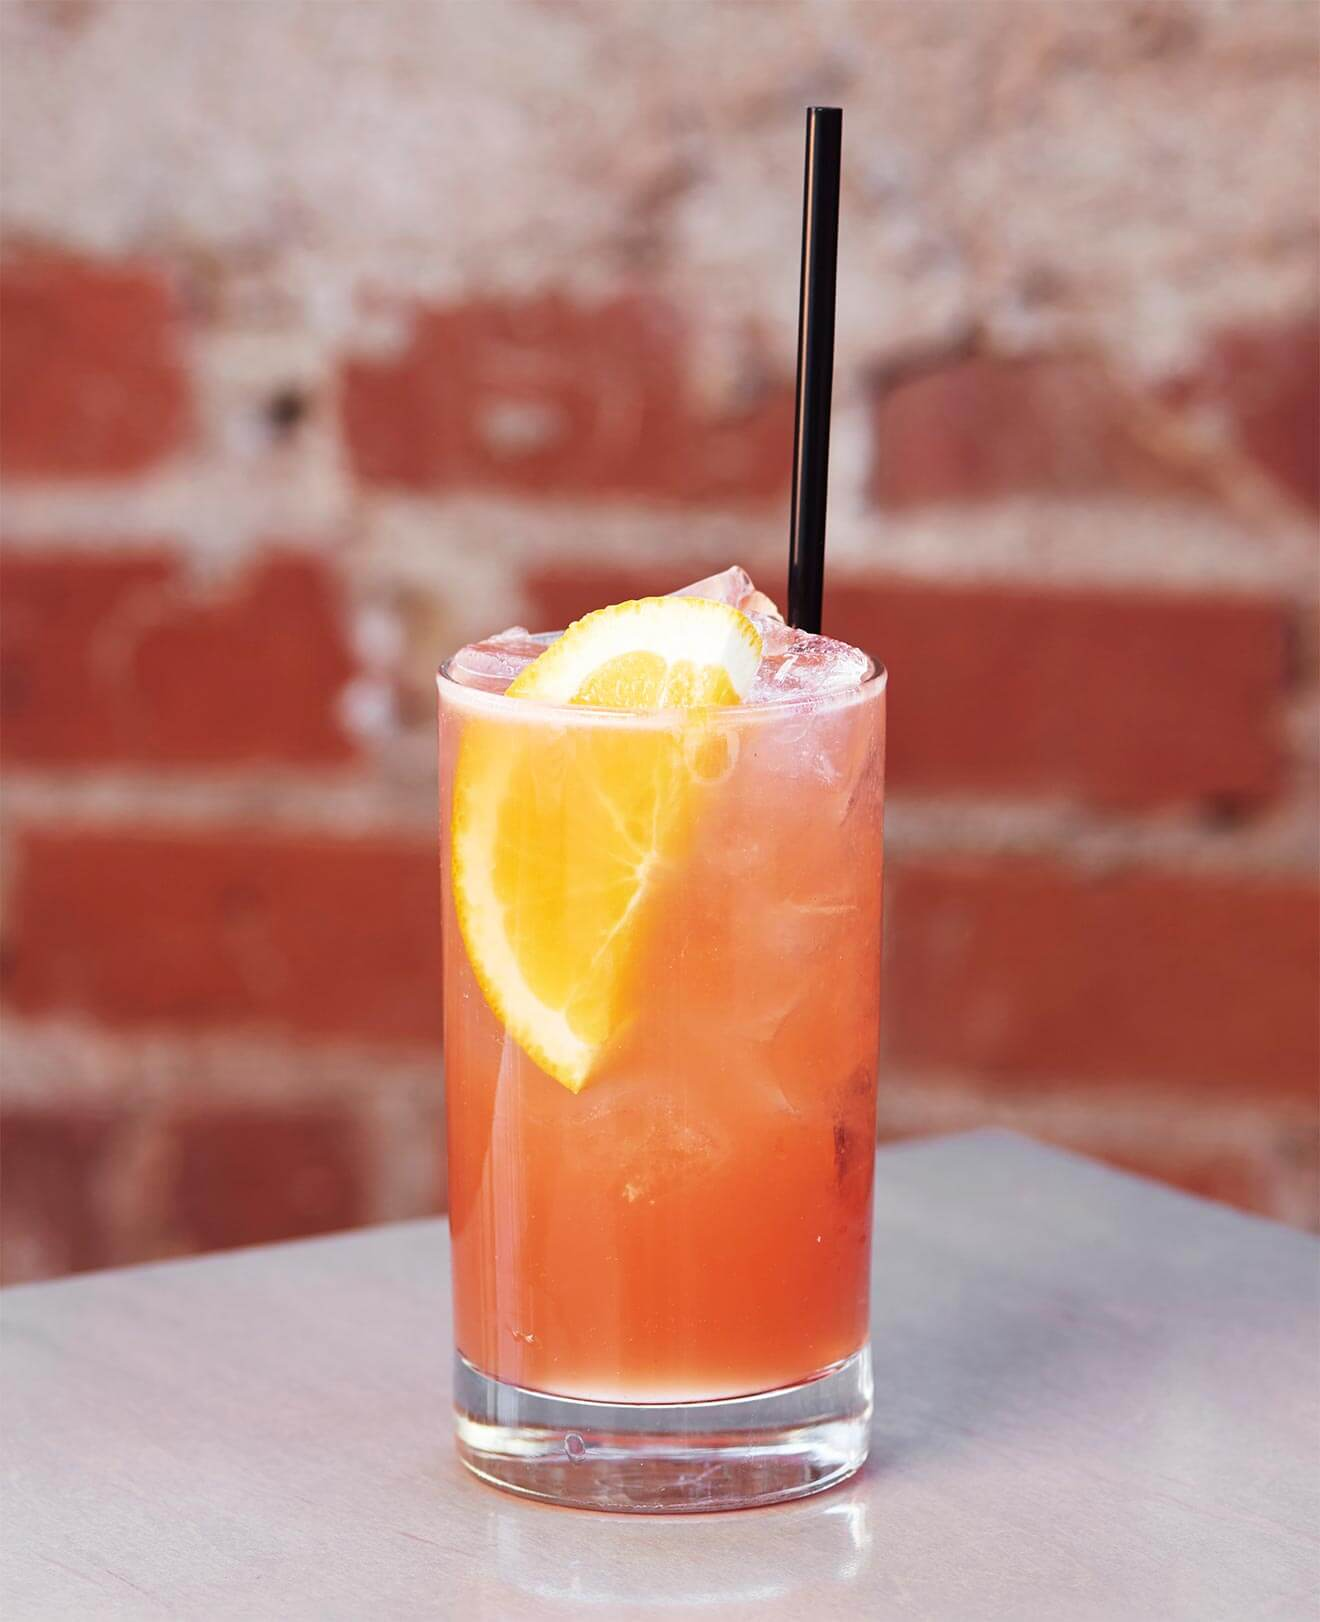 #1 Crush, cocktail with garnish and straw, brick wall background